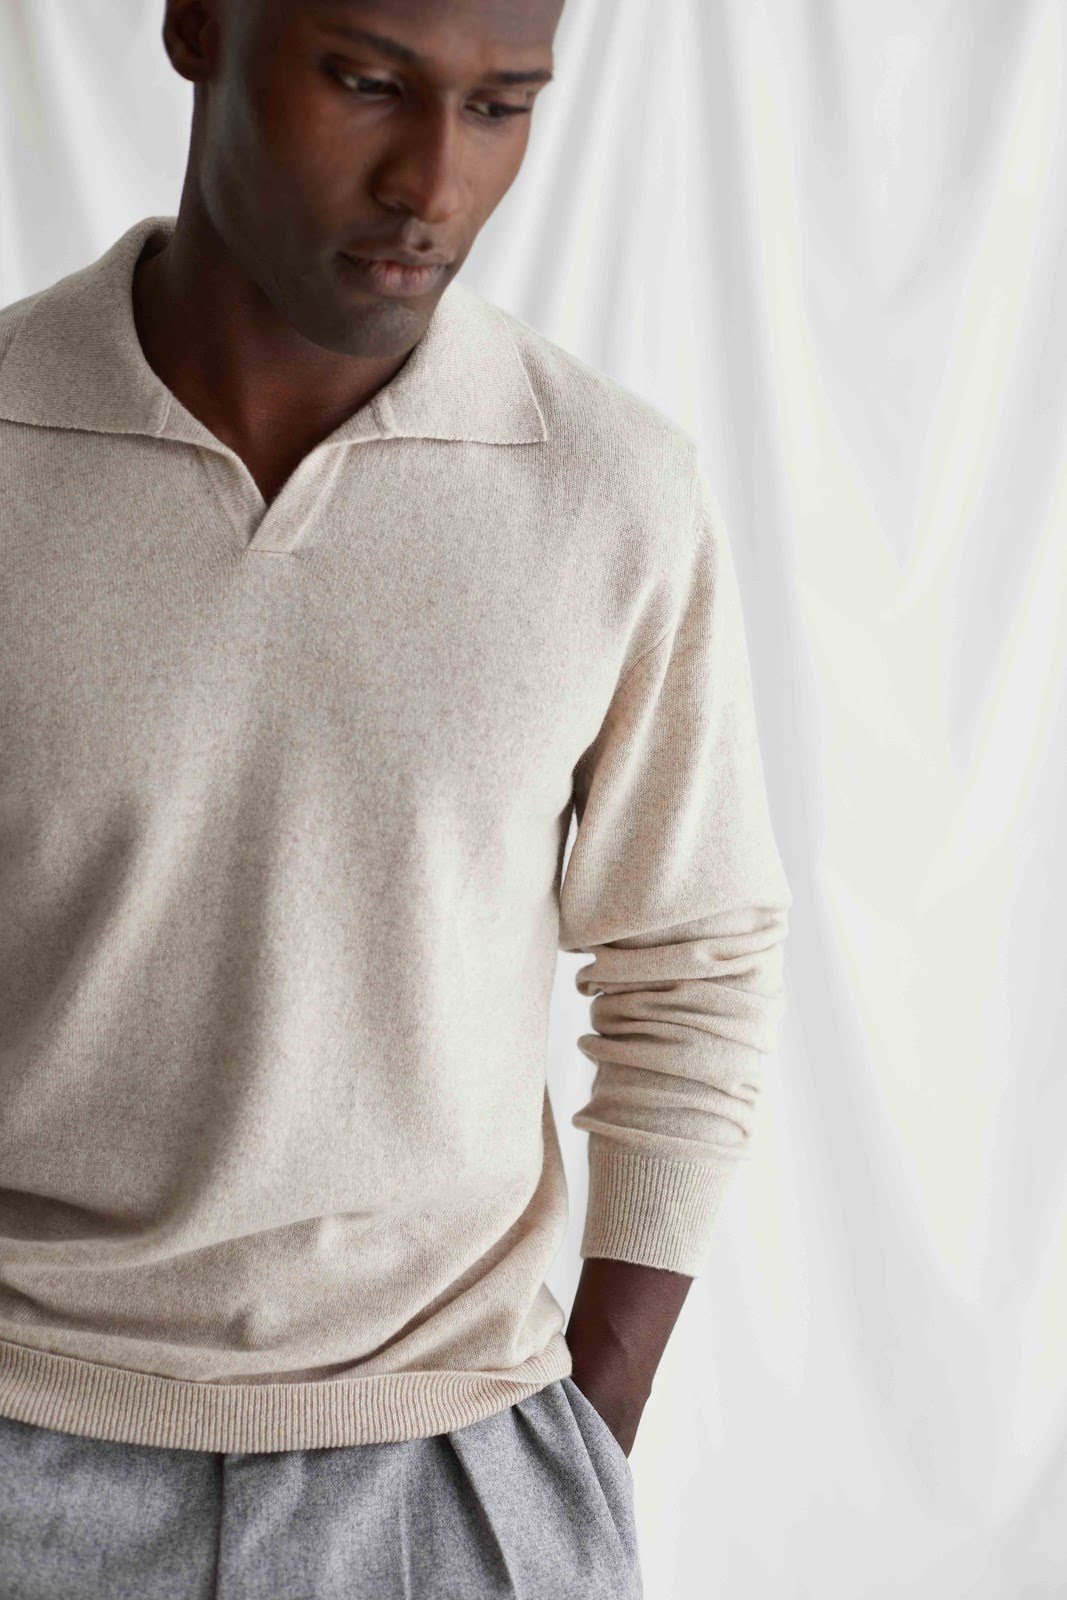 Man Open Collar Sweater